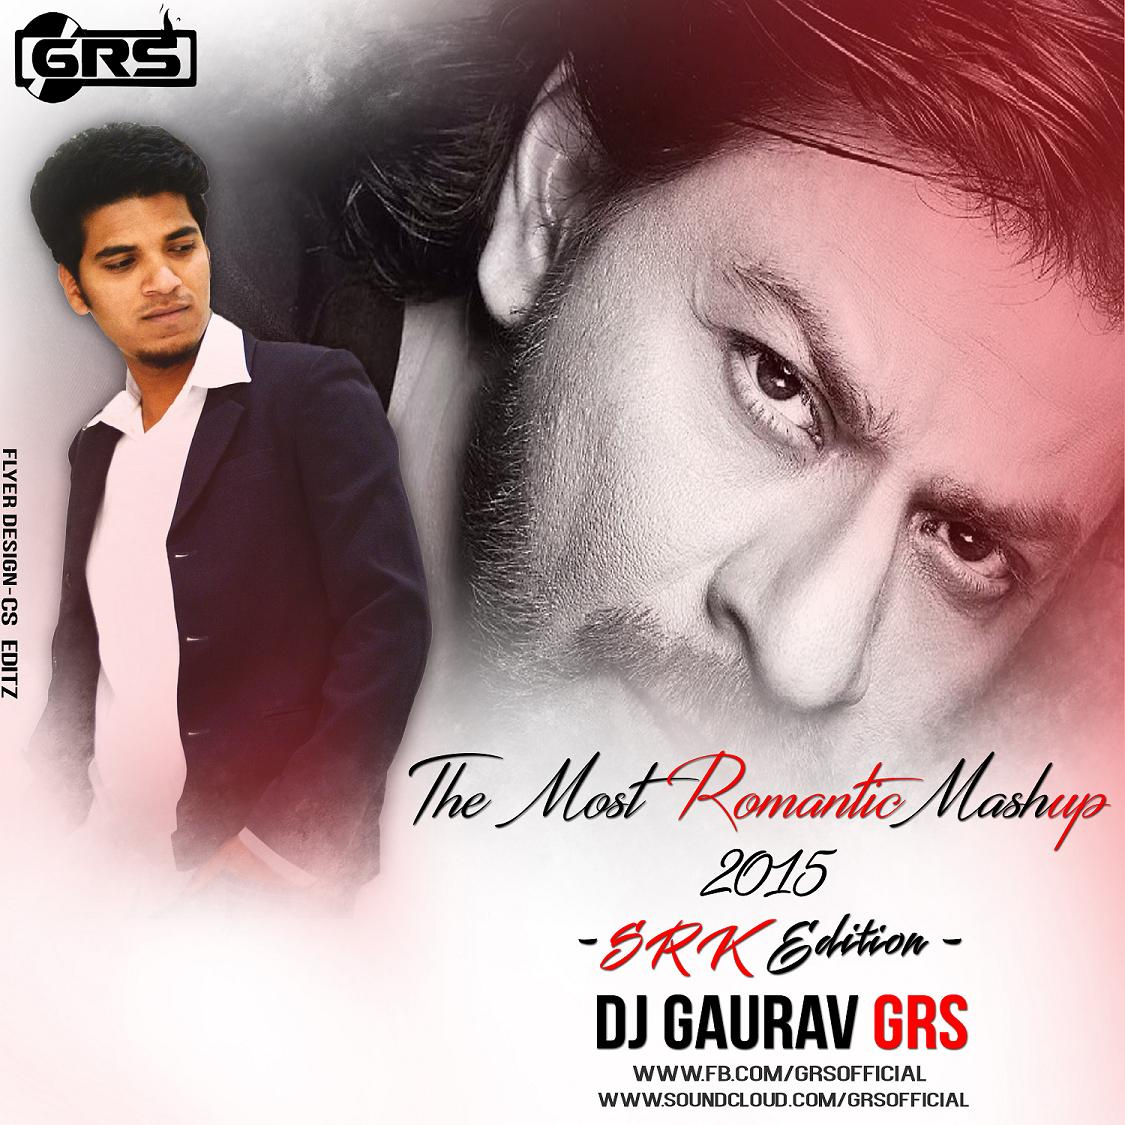 Hindi Romantic Maseup Song Download: The Most Romantic Mashup 2015 [SRK Edition] Dj Gaurav